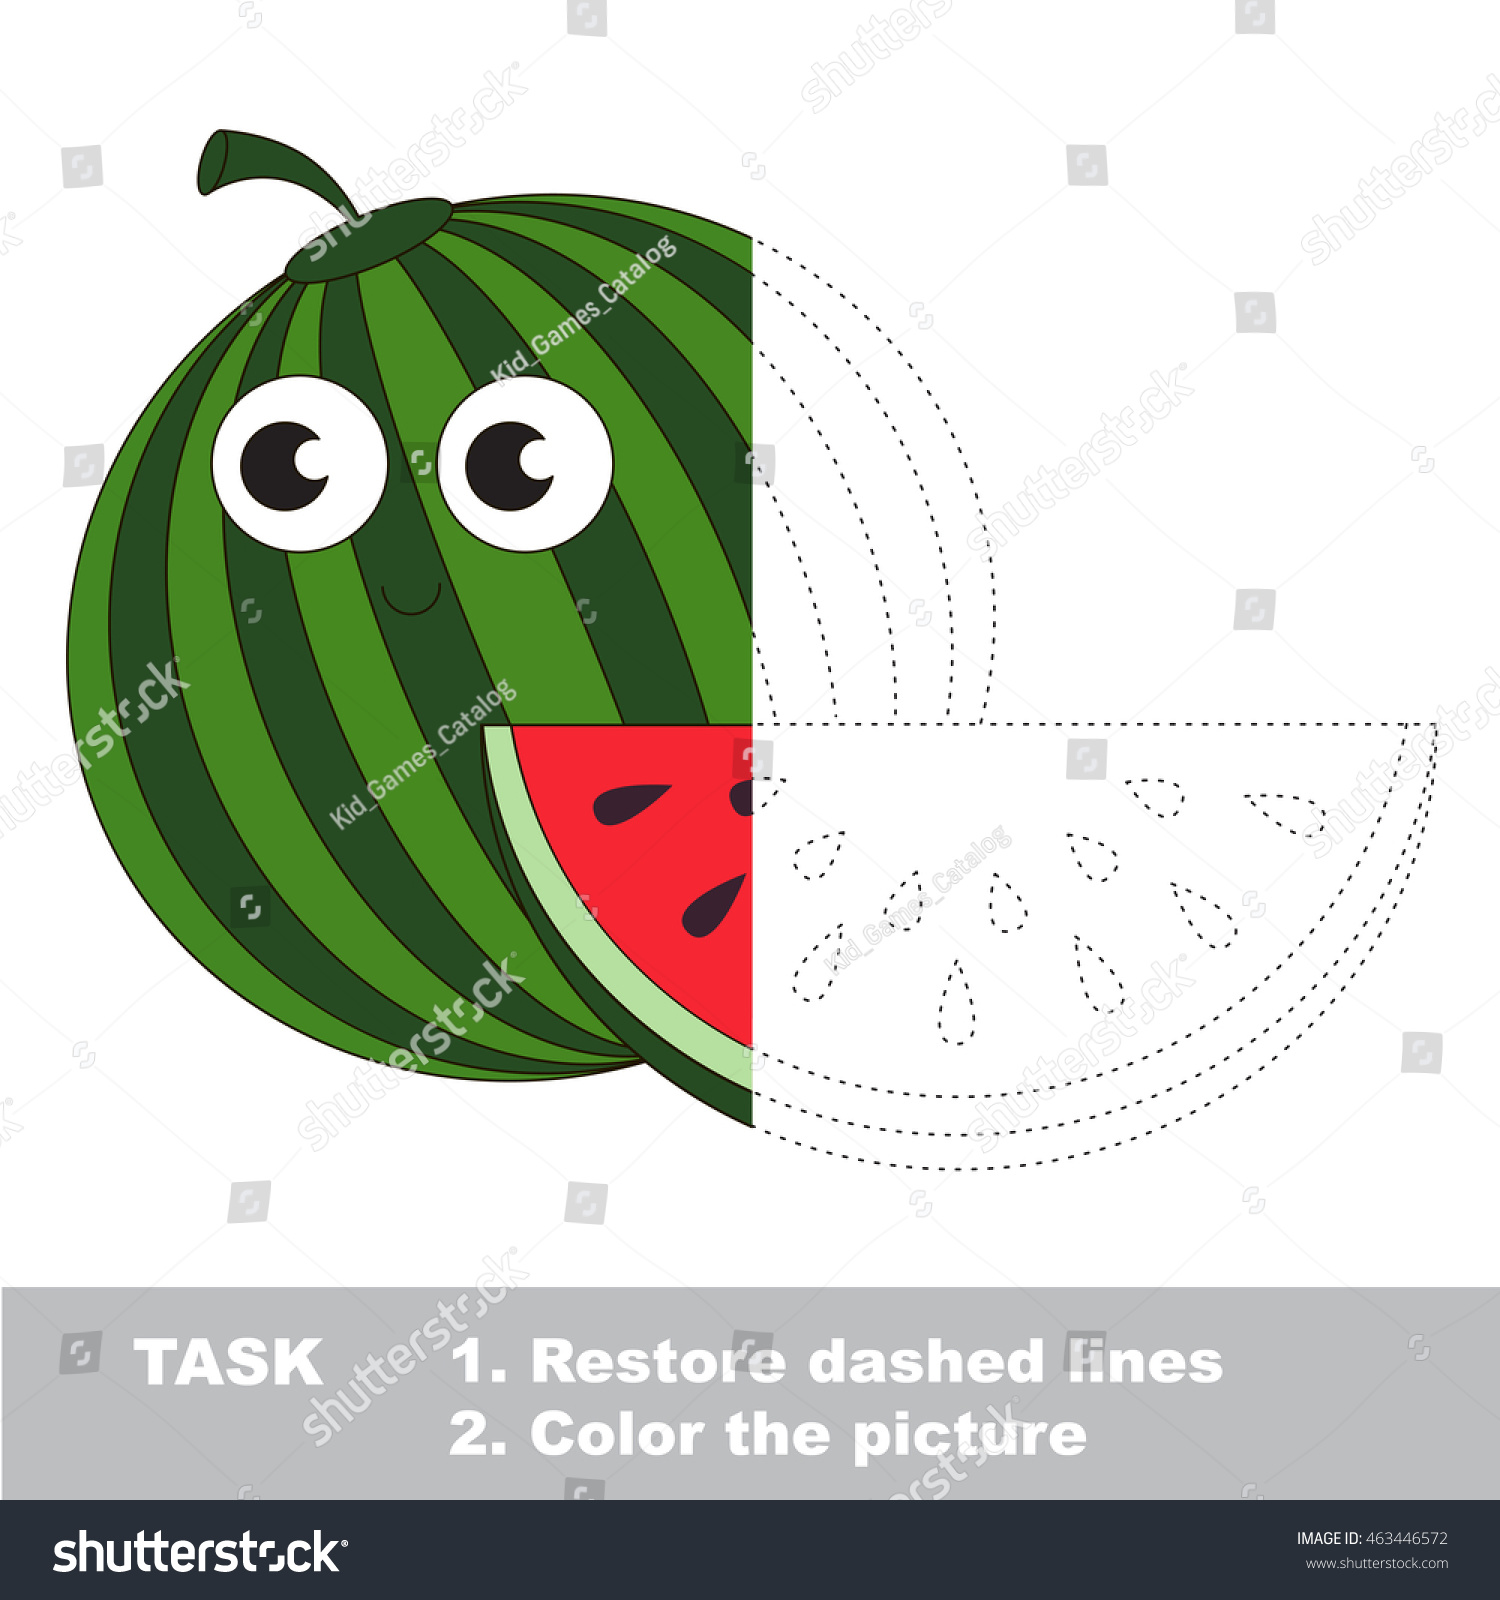 Watermelon Vector Be Traced Restore Dashed Stock Vector 463446572 ...